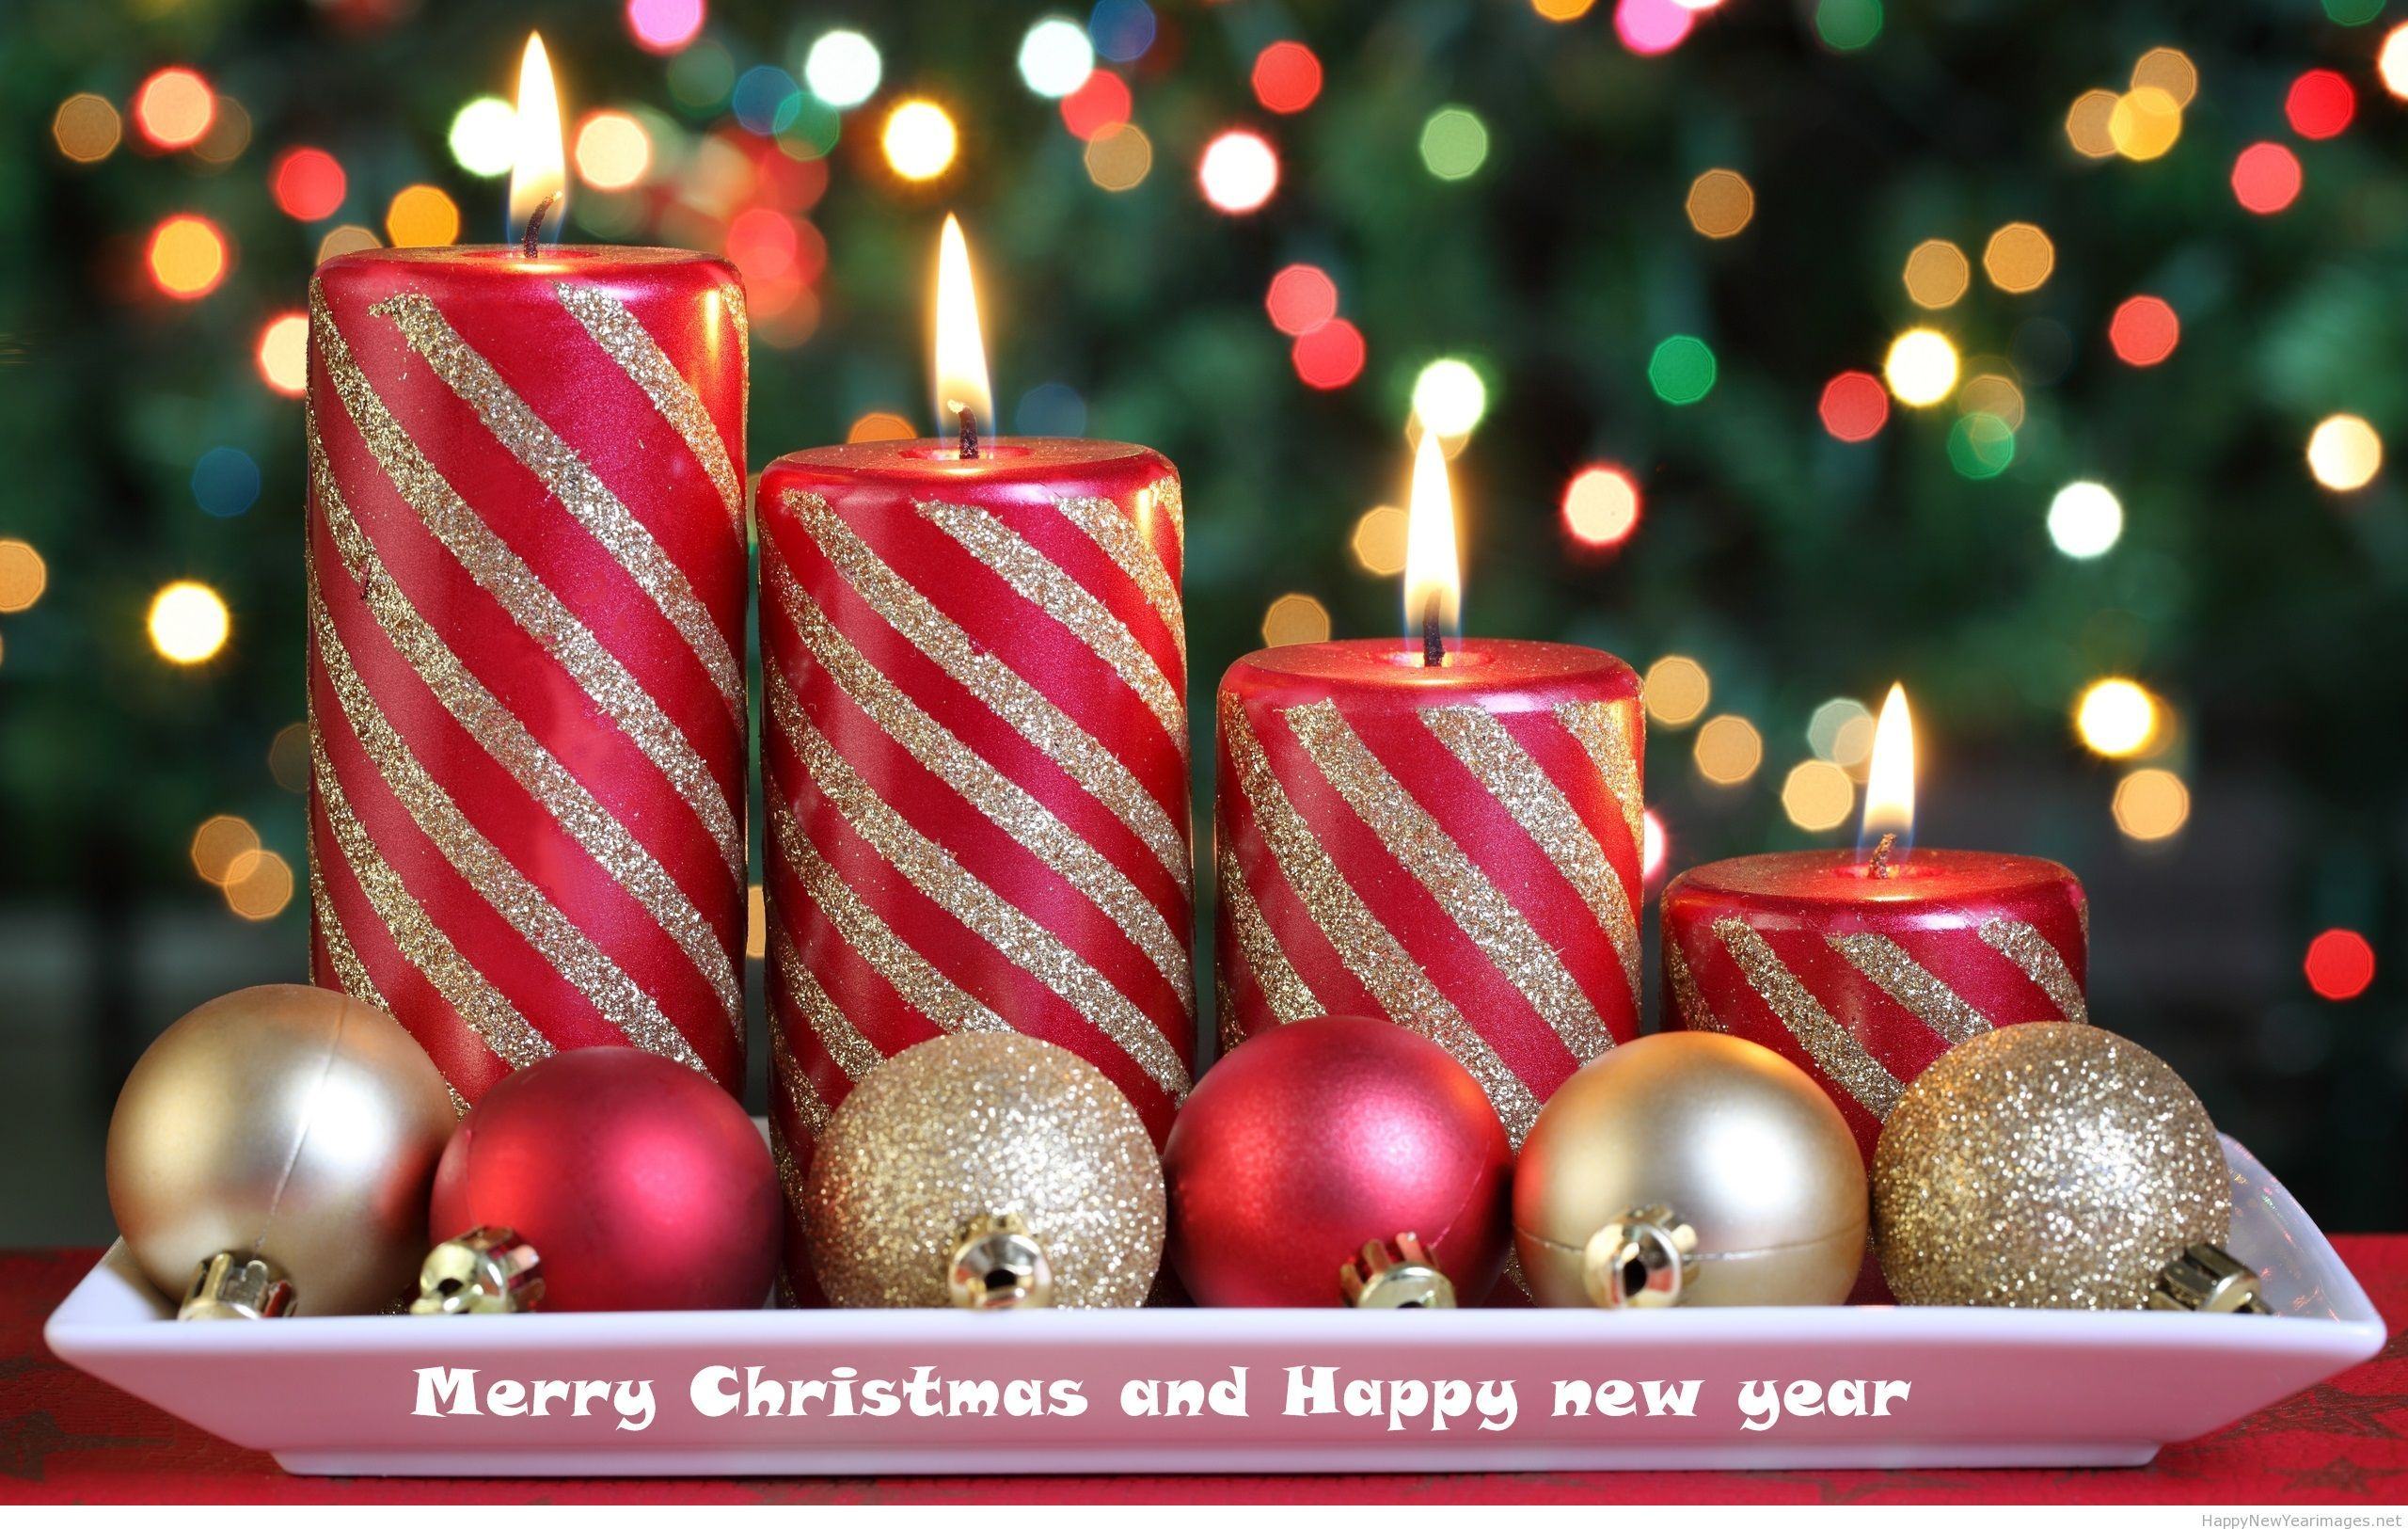 Candle Merry Christmas 2015 Wallpaper